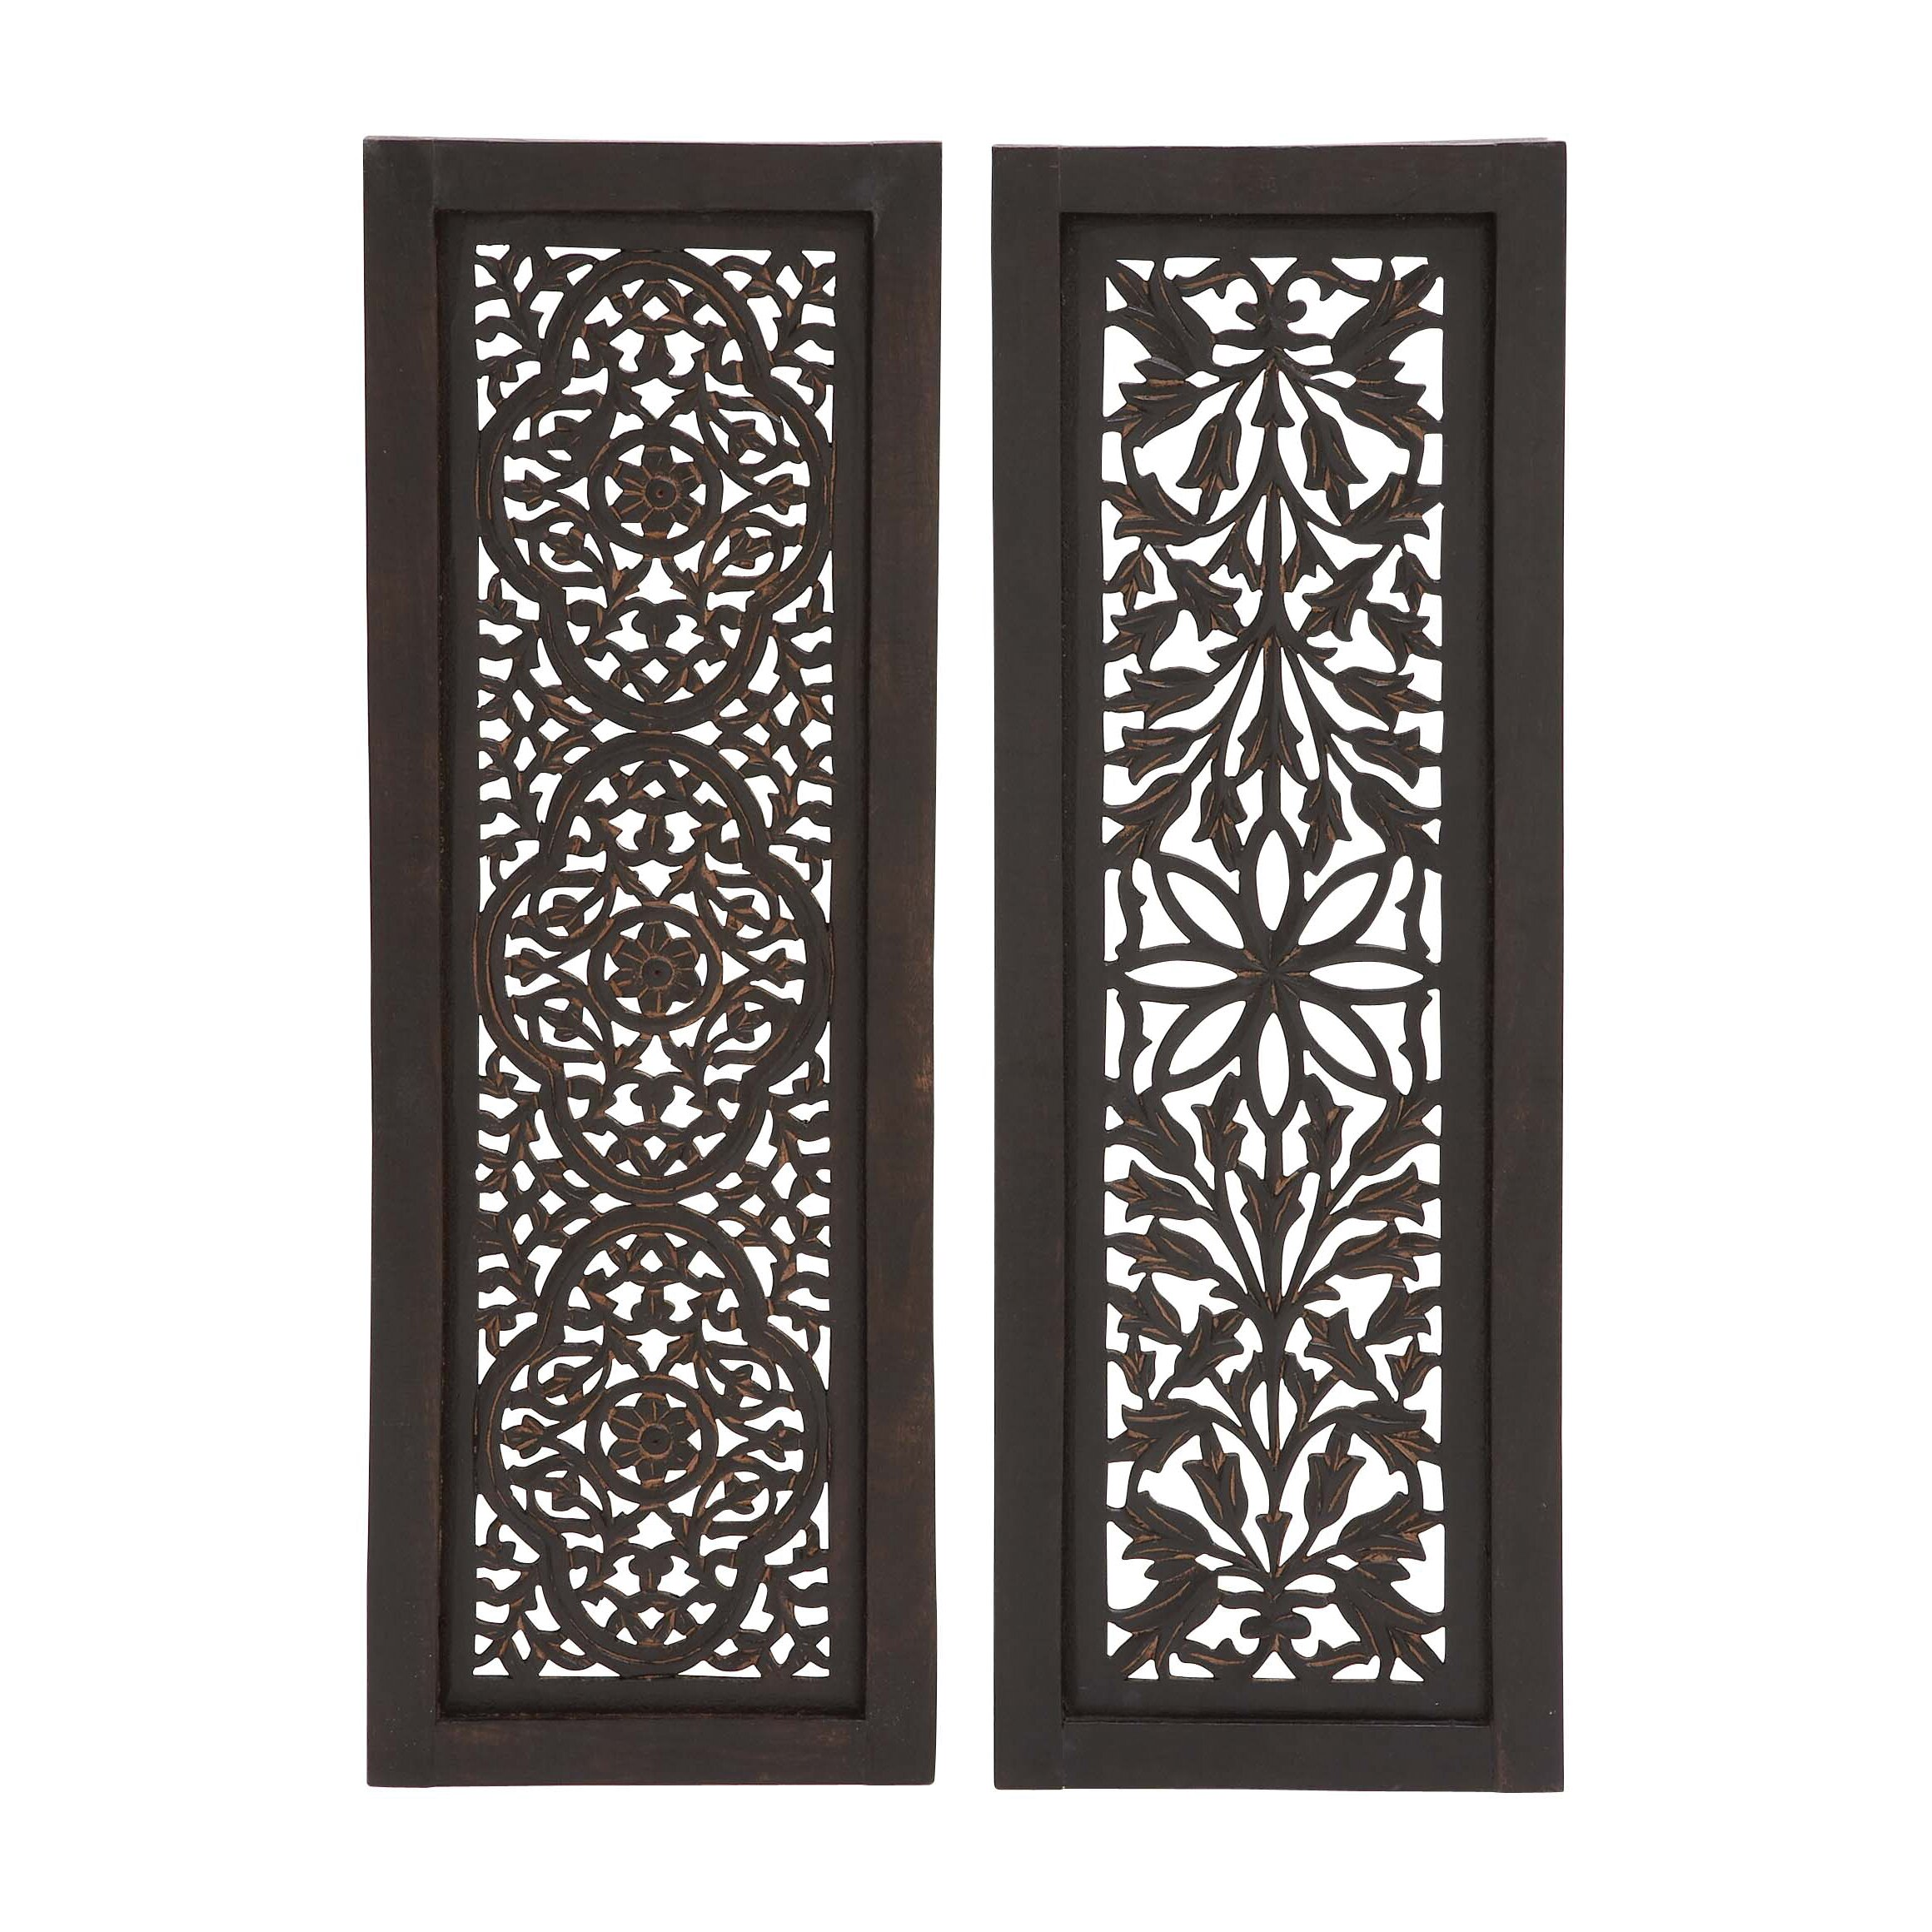 Panel Wall D Cor By Woodland Imports: Woodland Imports 2 Piece Beautiful Styled Wood Panel Wall